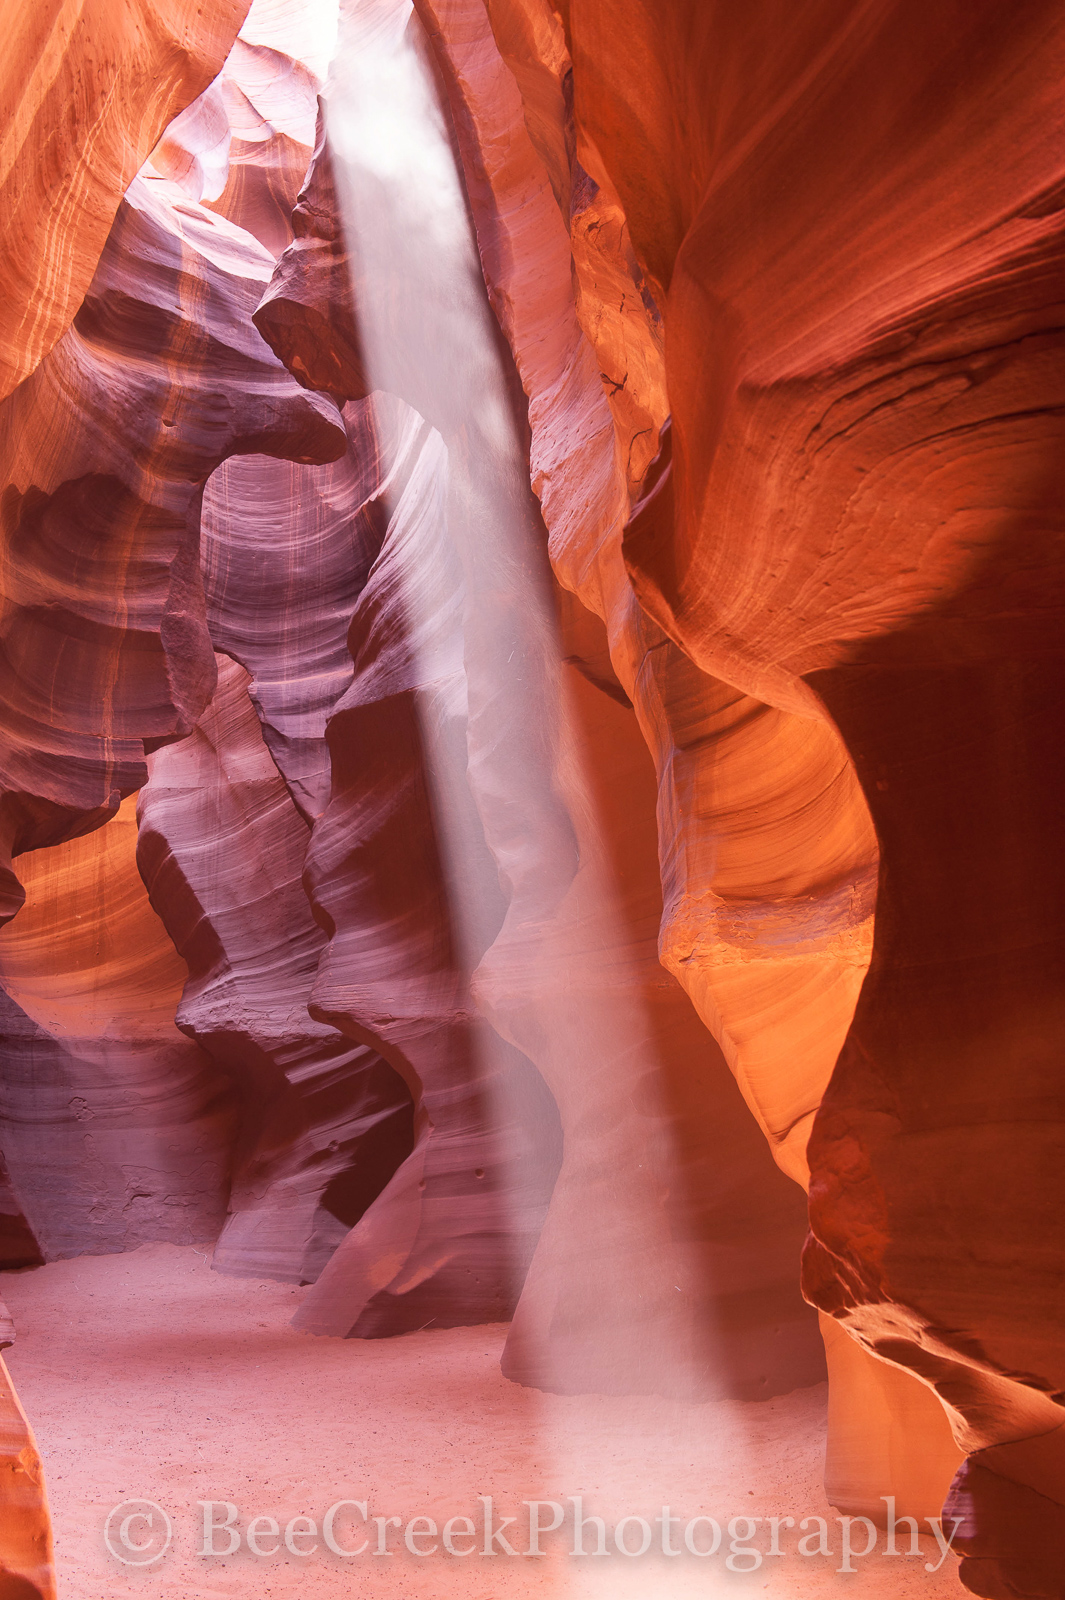 AZ, Arizona, Fine art photos, Page AZ, Peter lik, antelope canyon, antelope canyons az, best sellers, desert southwest, geologic landscape, geology, images of antelope canyon, images of arizona, image, photo